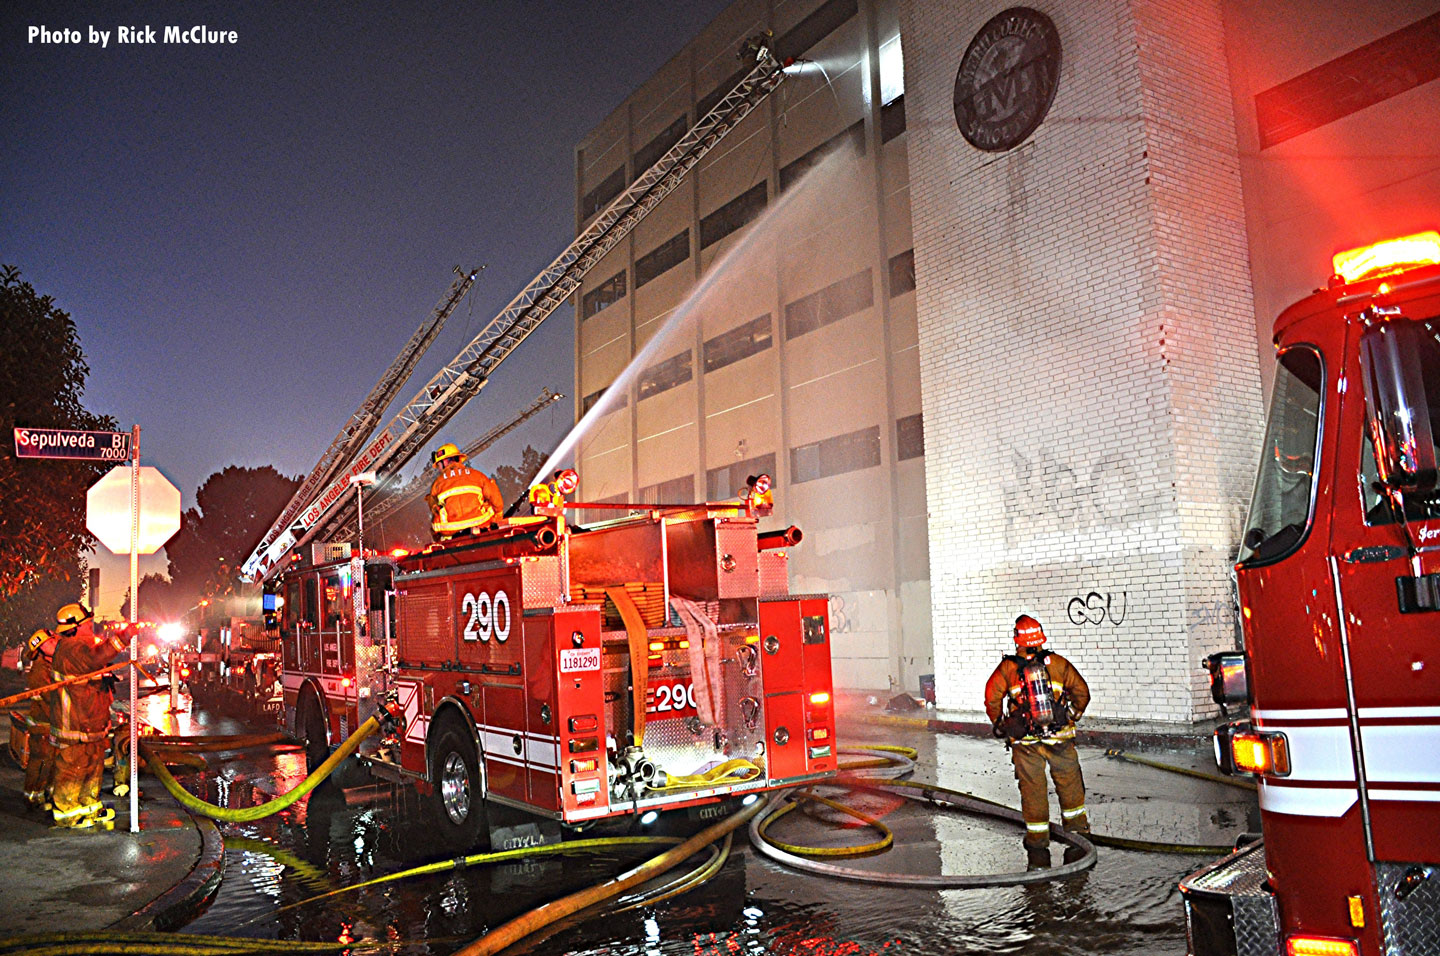 There were no reported injuries to firefighters.